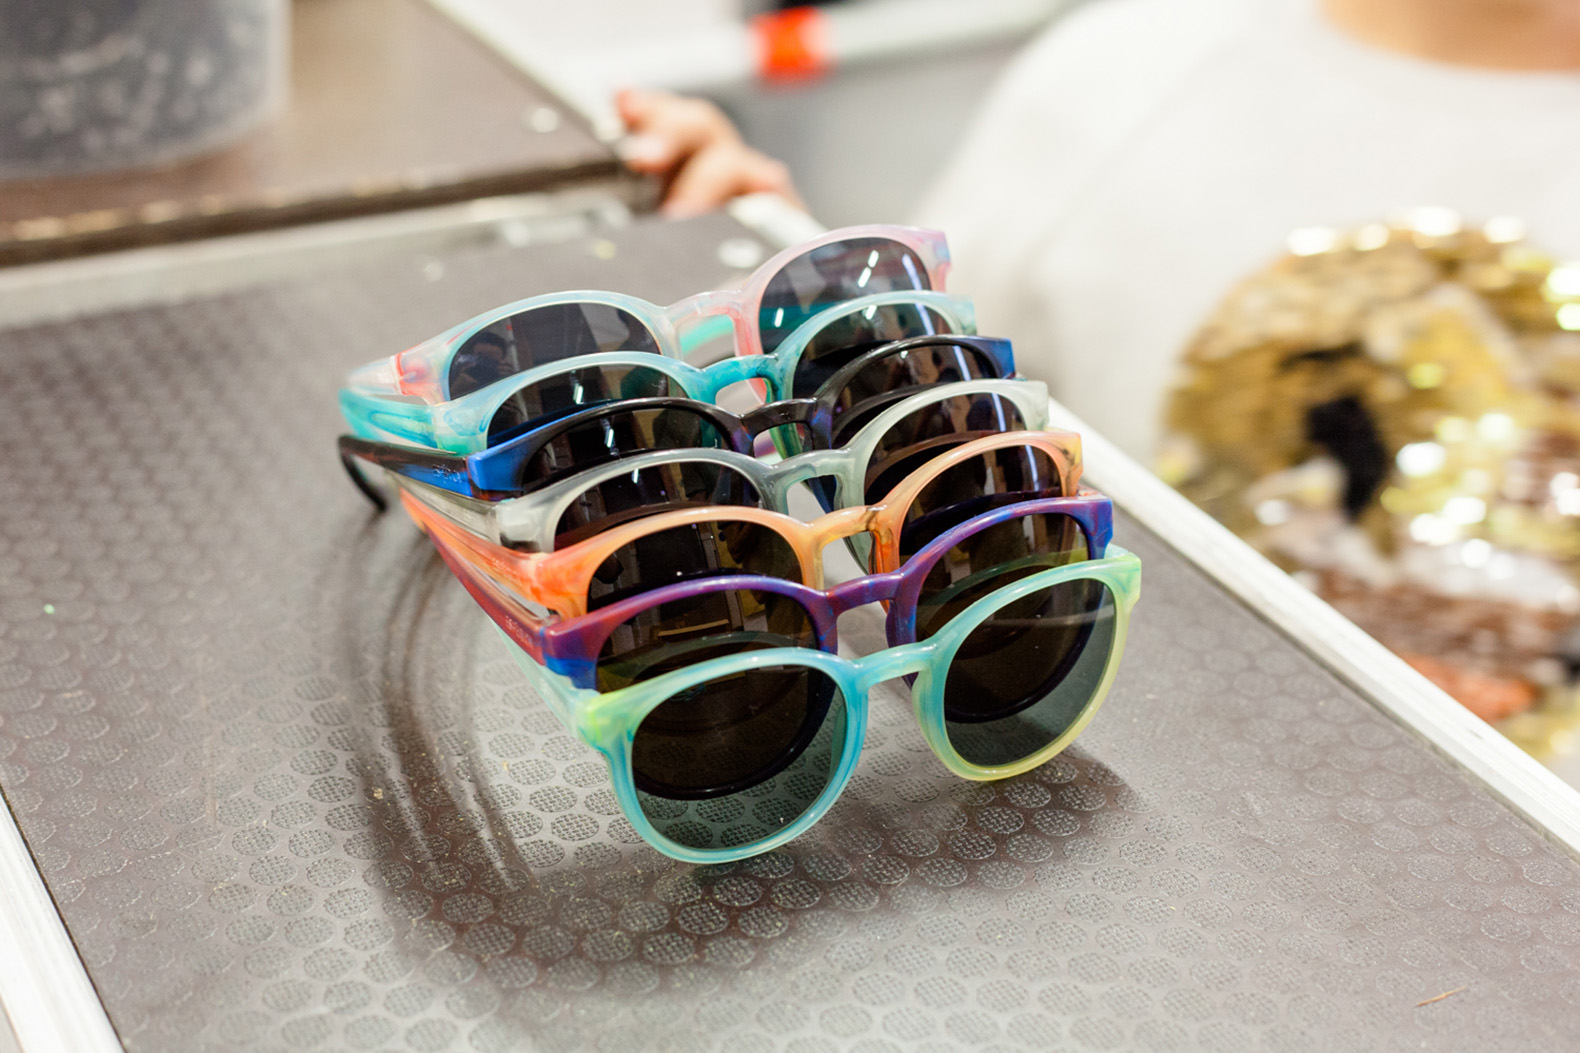 Make your own custom sunglasses from recycled plastic with FOS